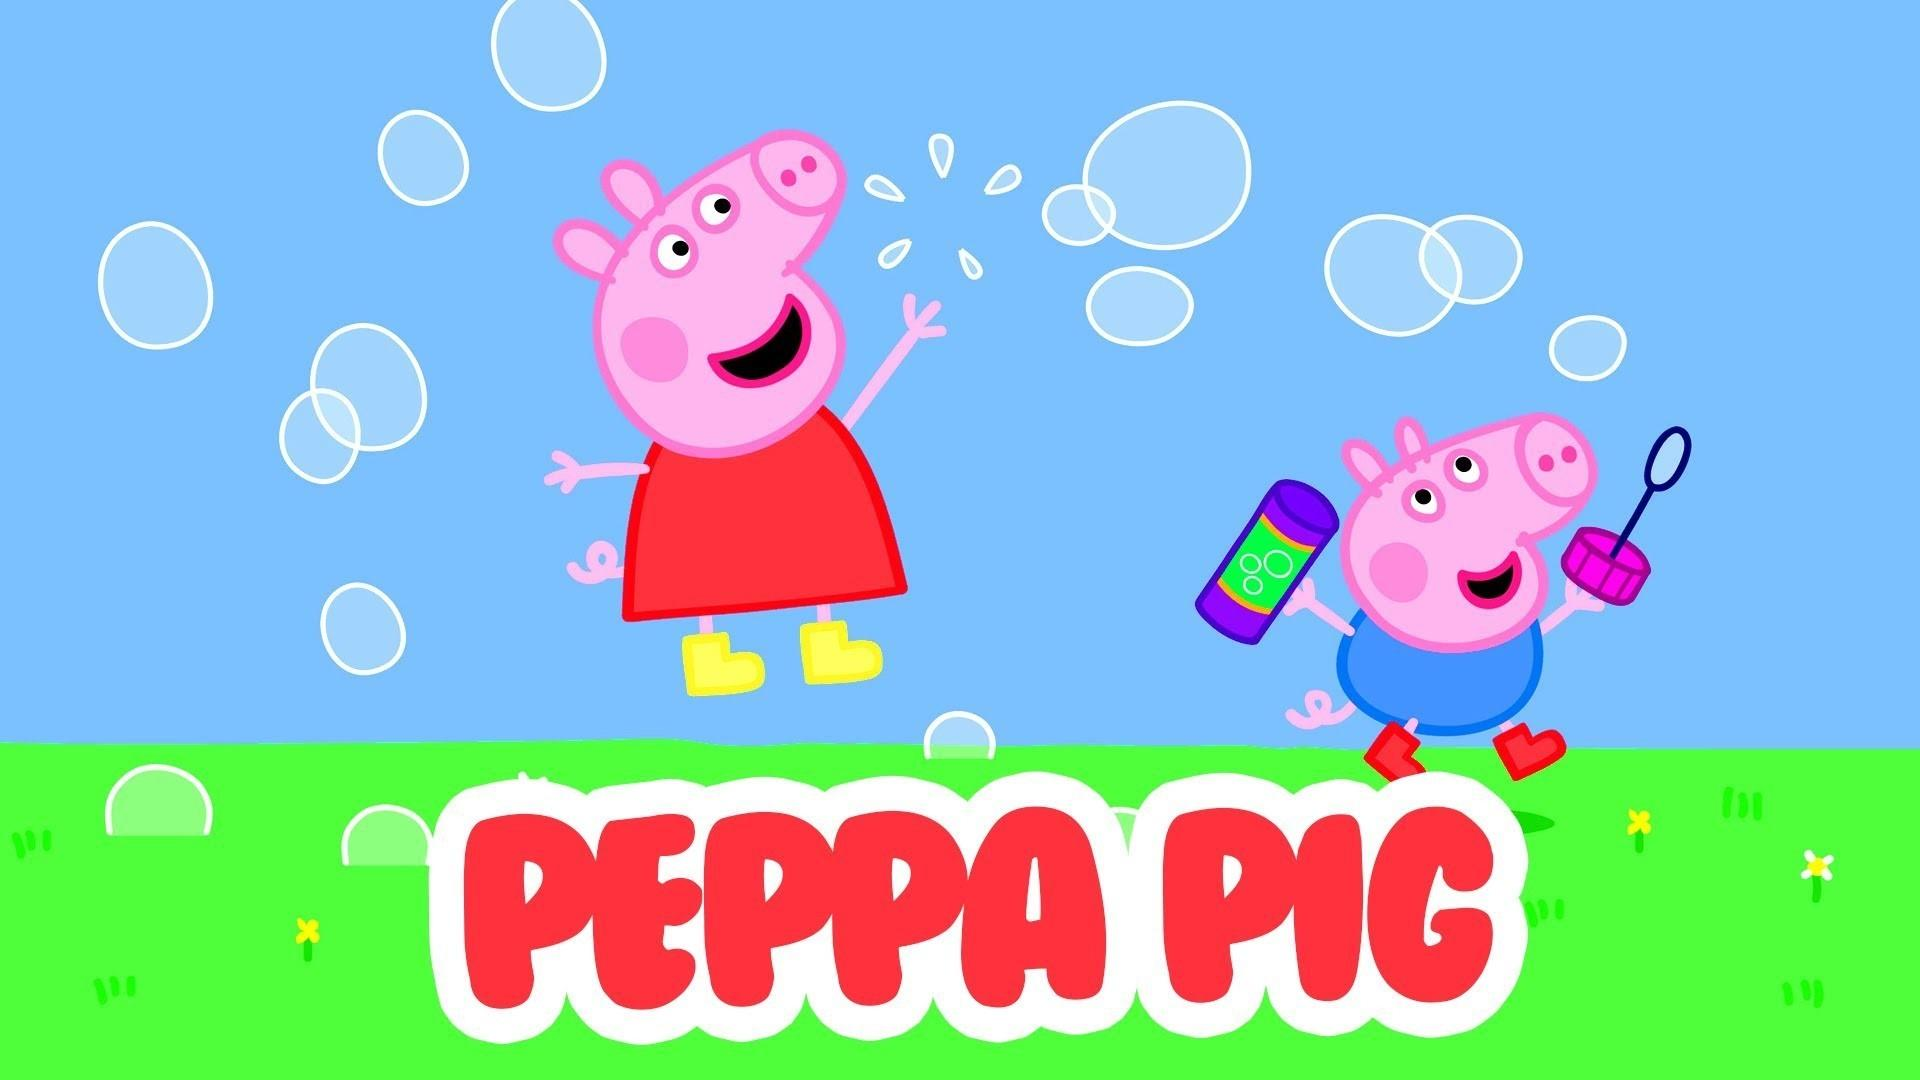 Peppa Pig Wallpapers